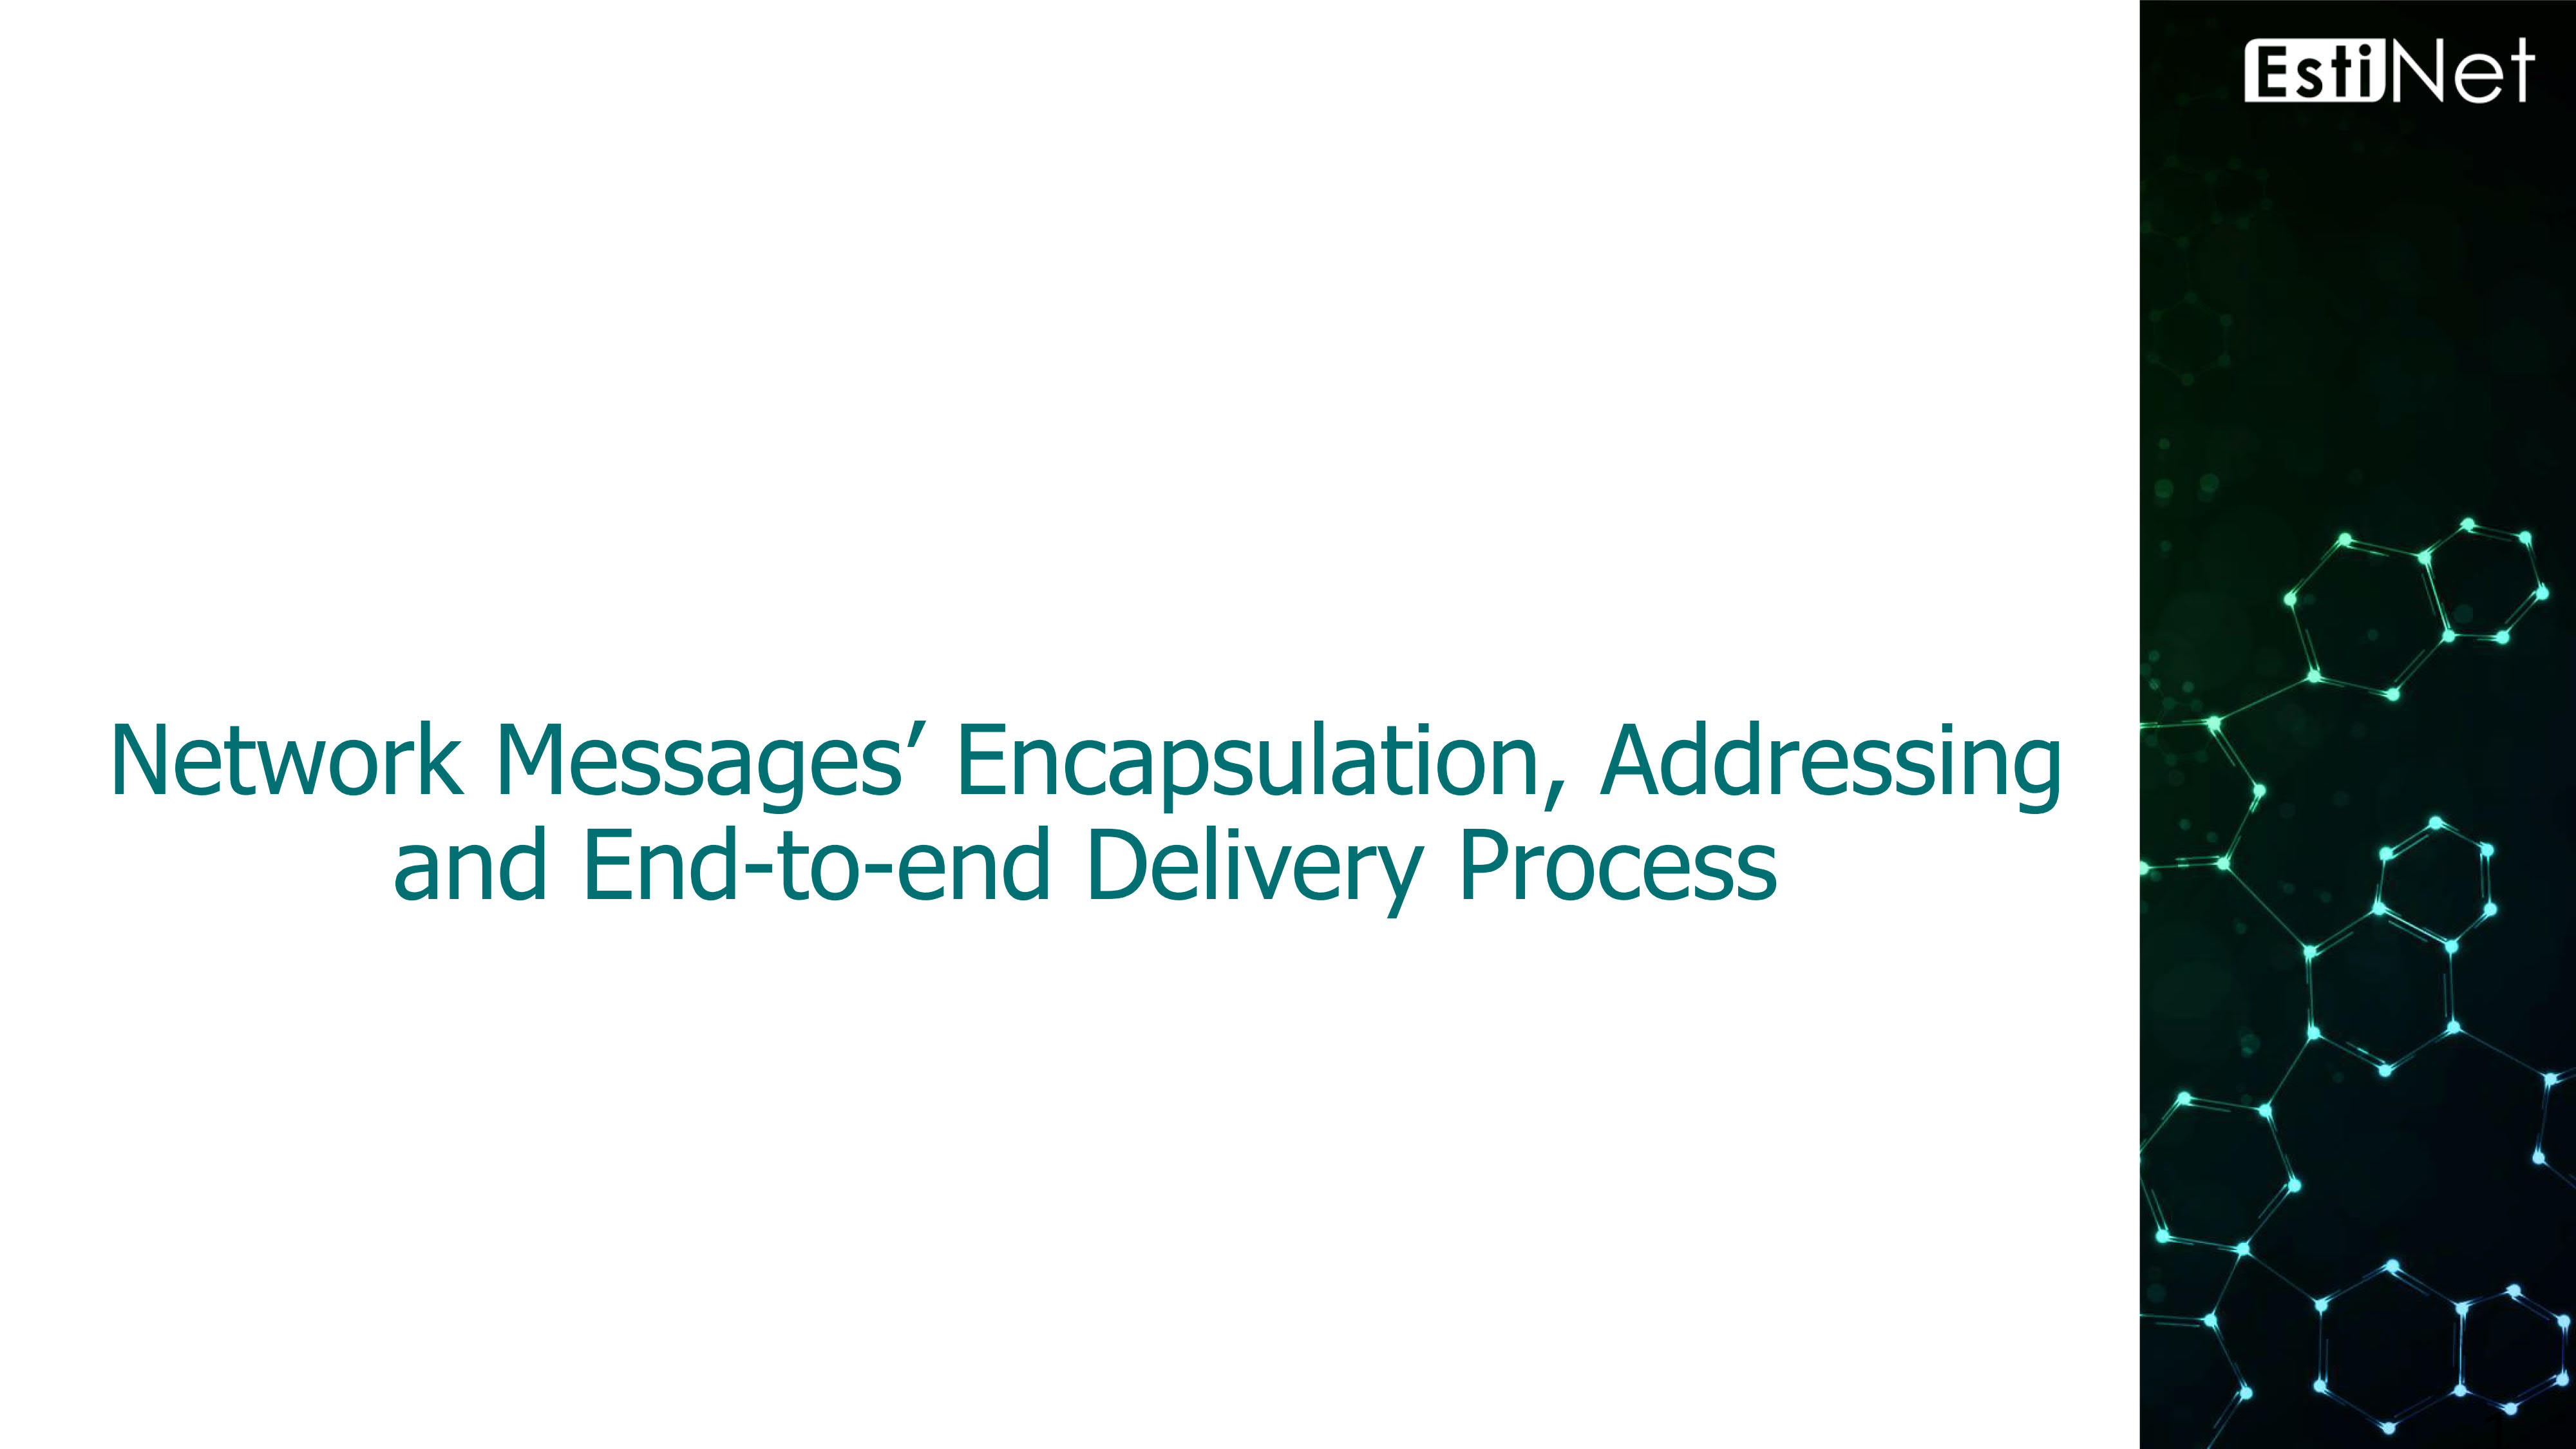 Network Messages' Encapsulation, Addressing and End-to-end Delivery Process_01